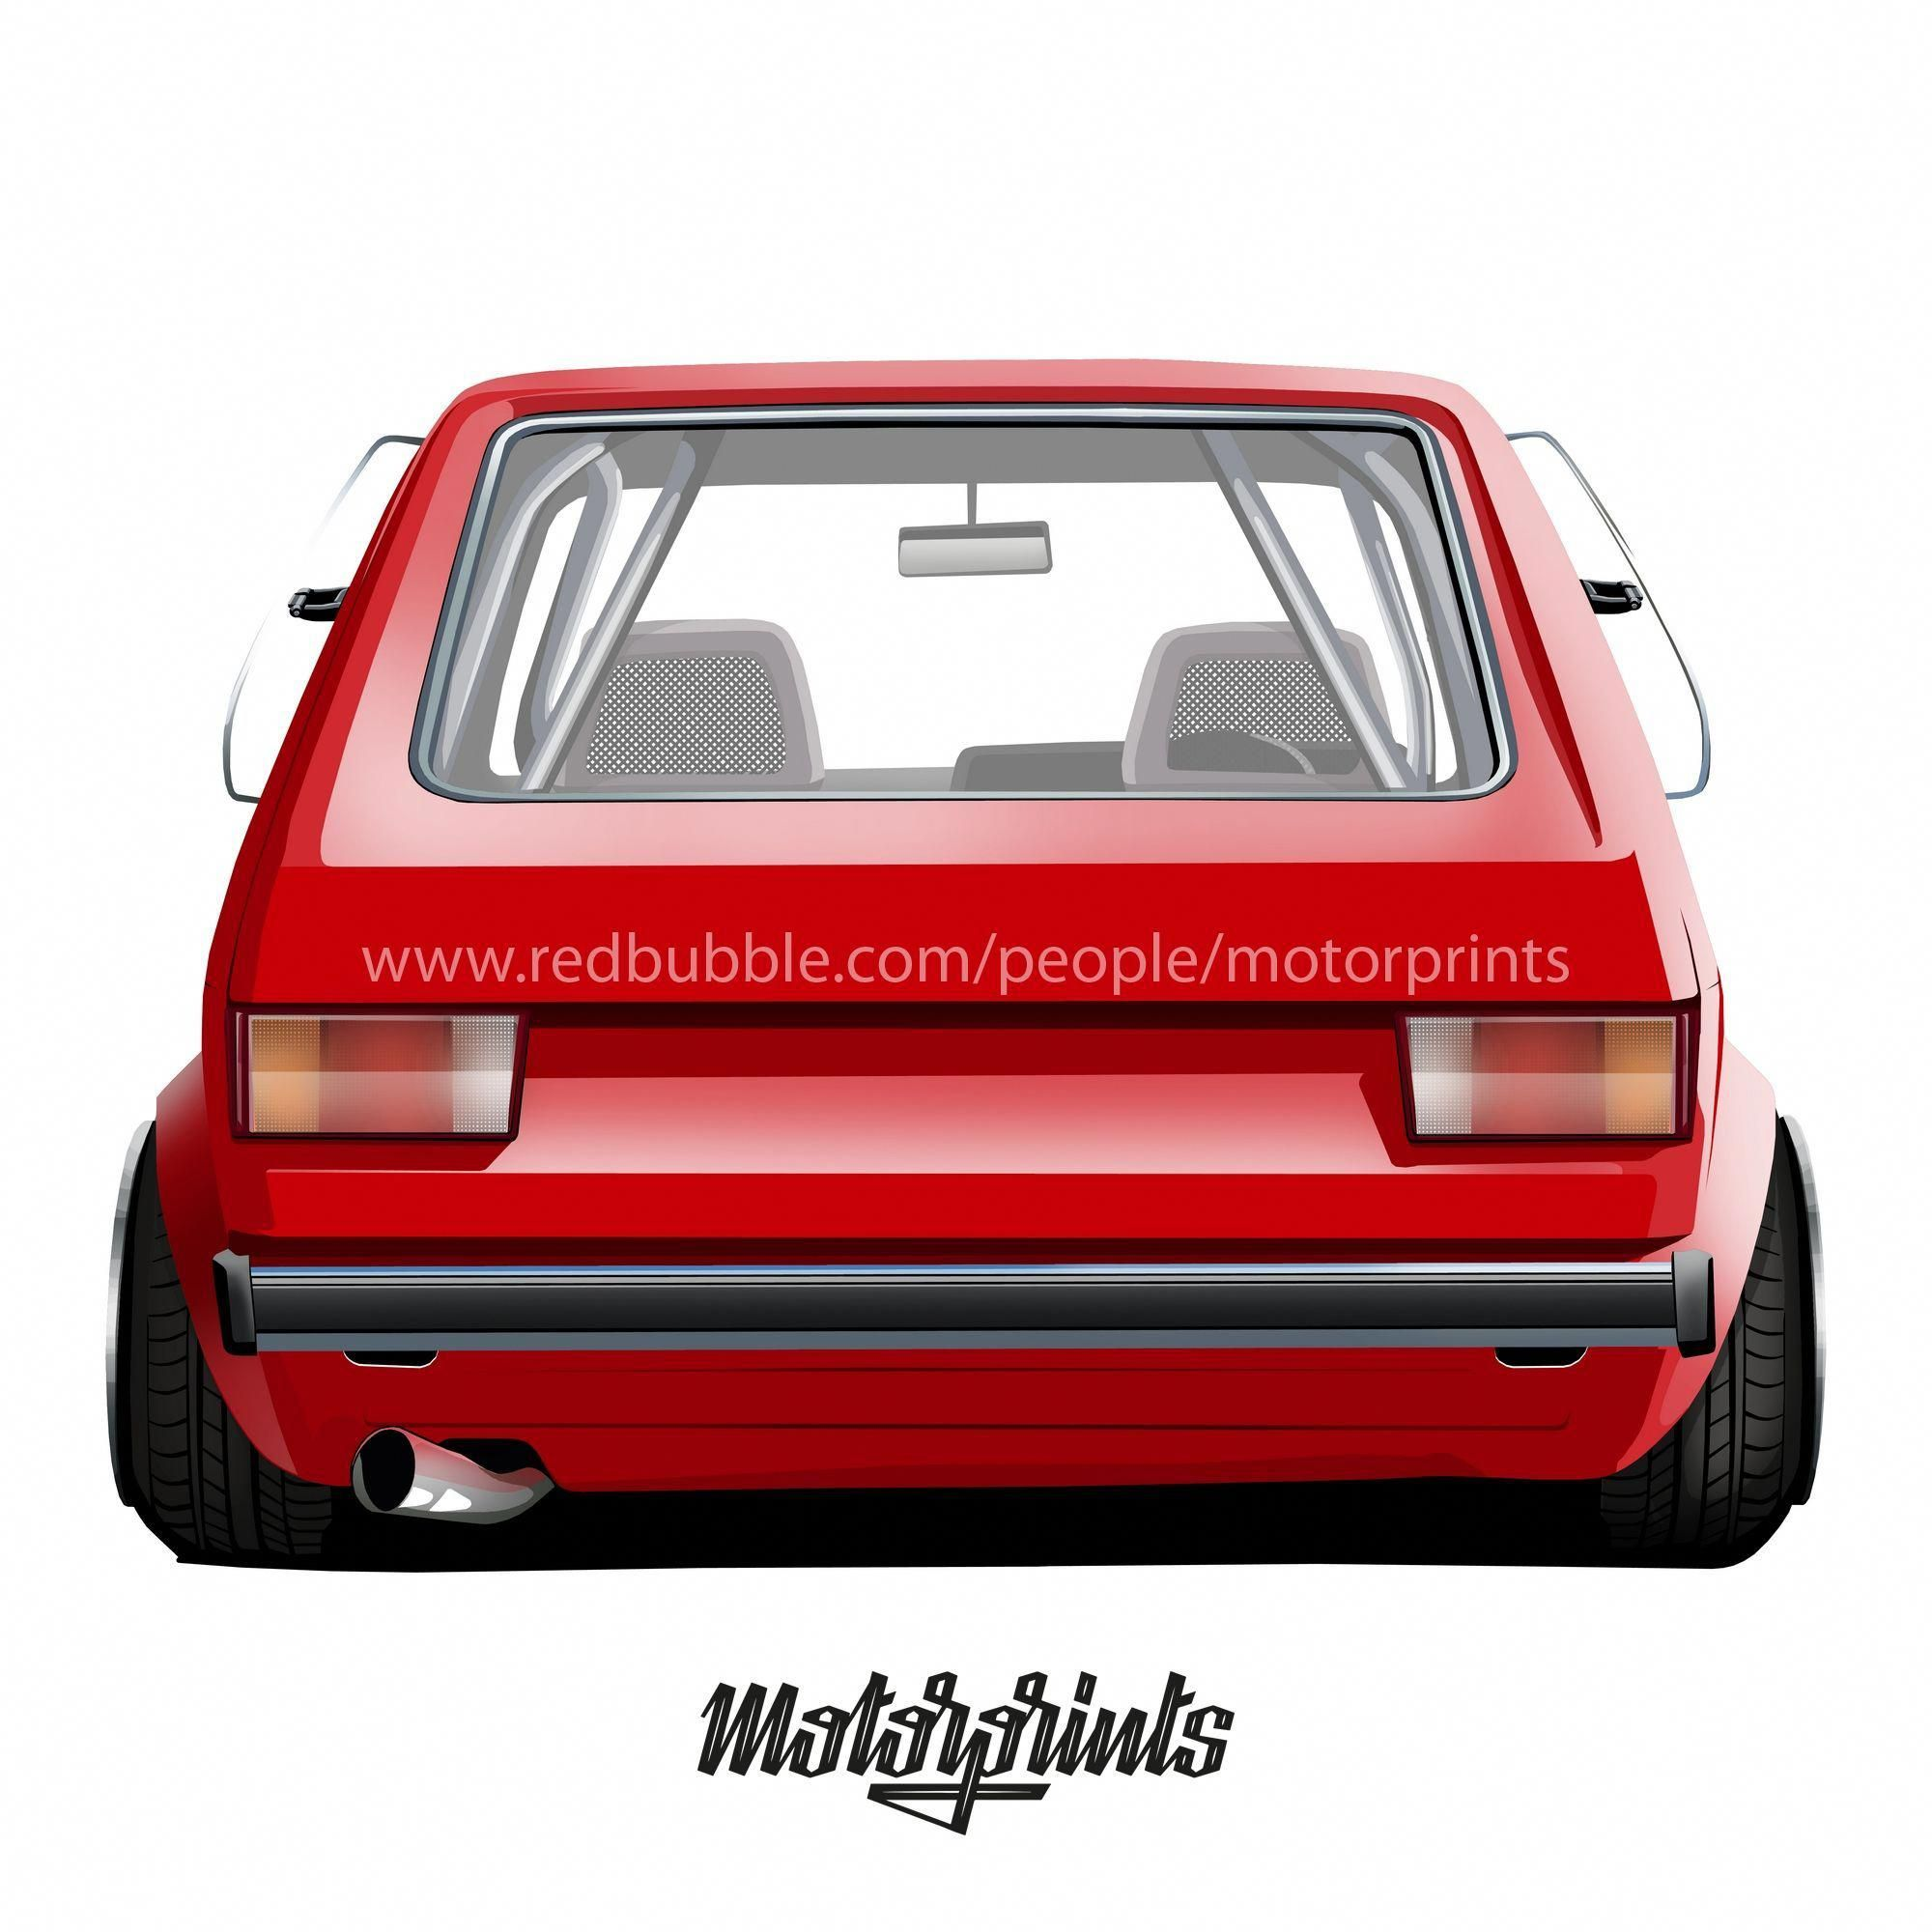 Vw Golf 1 Red Devil: Volkswagen Golf 1 (red) #volkswagen #golf #golf1 #golfi